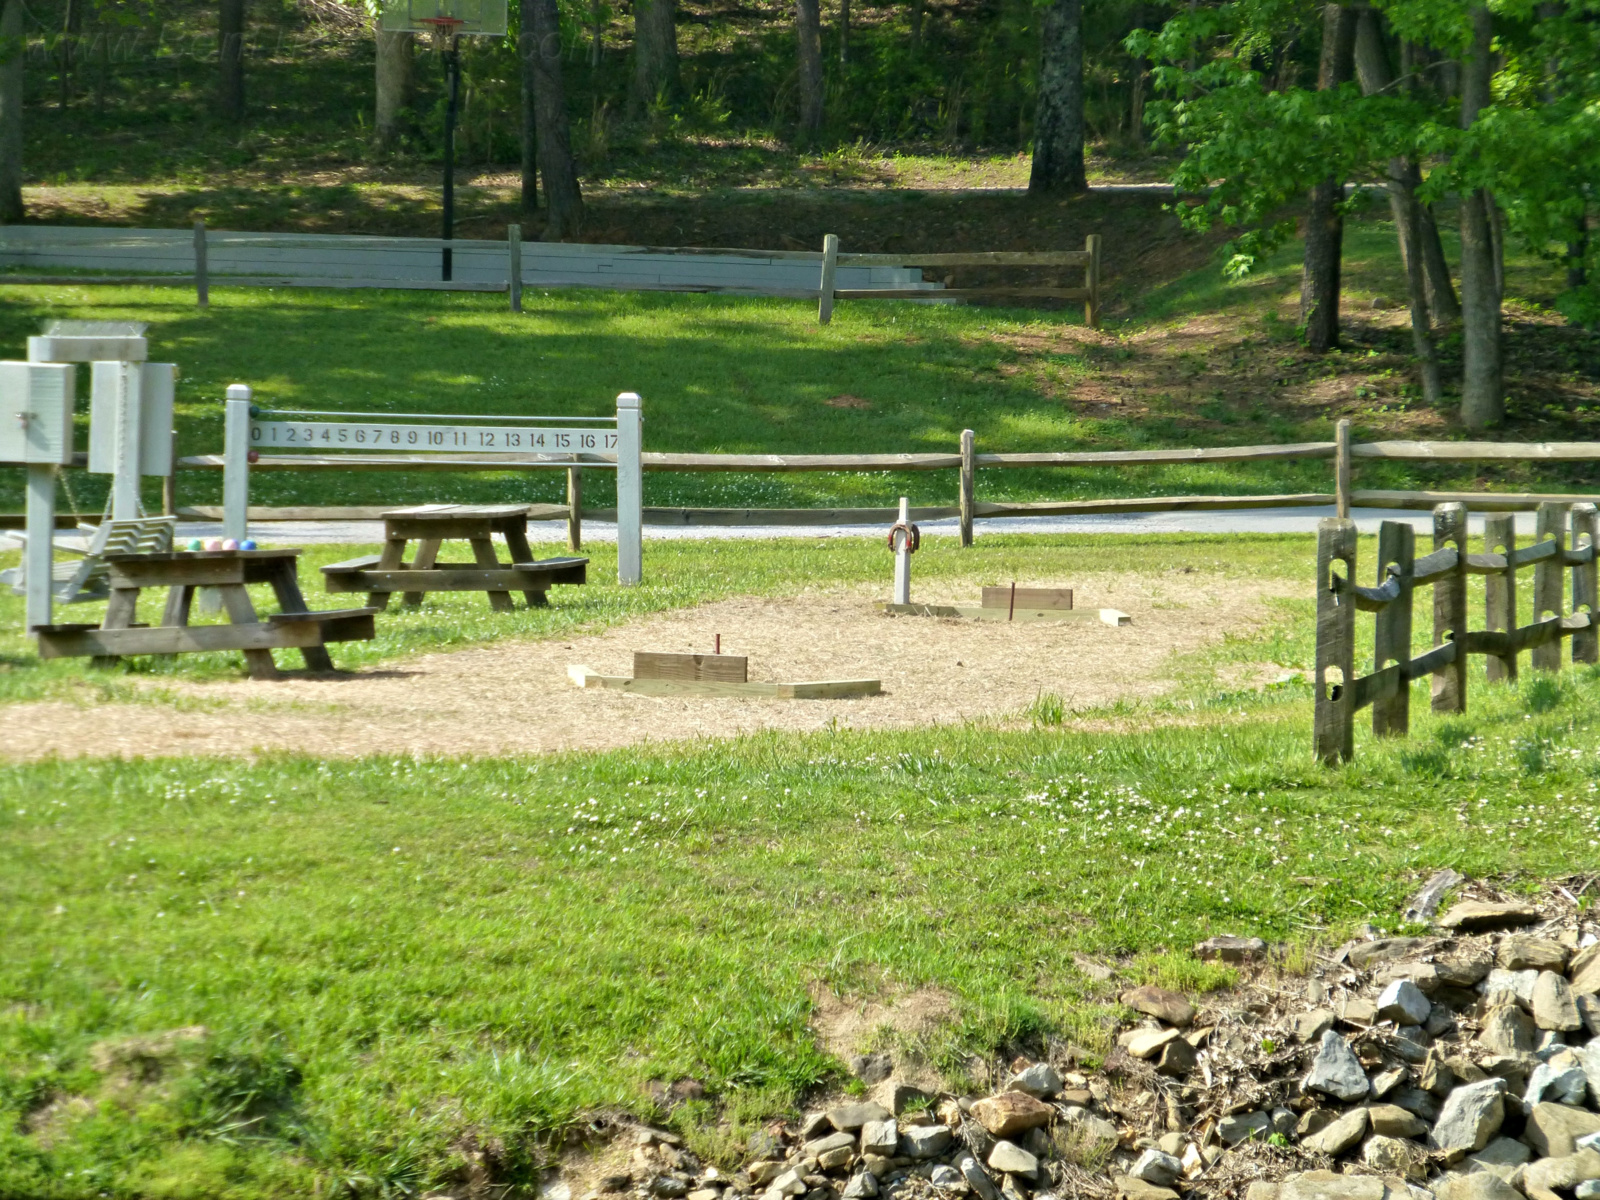 May 11, 2018 - New horseshoe pit in Bent Tree